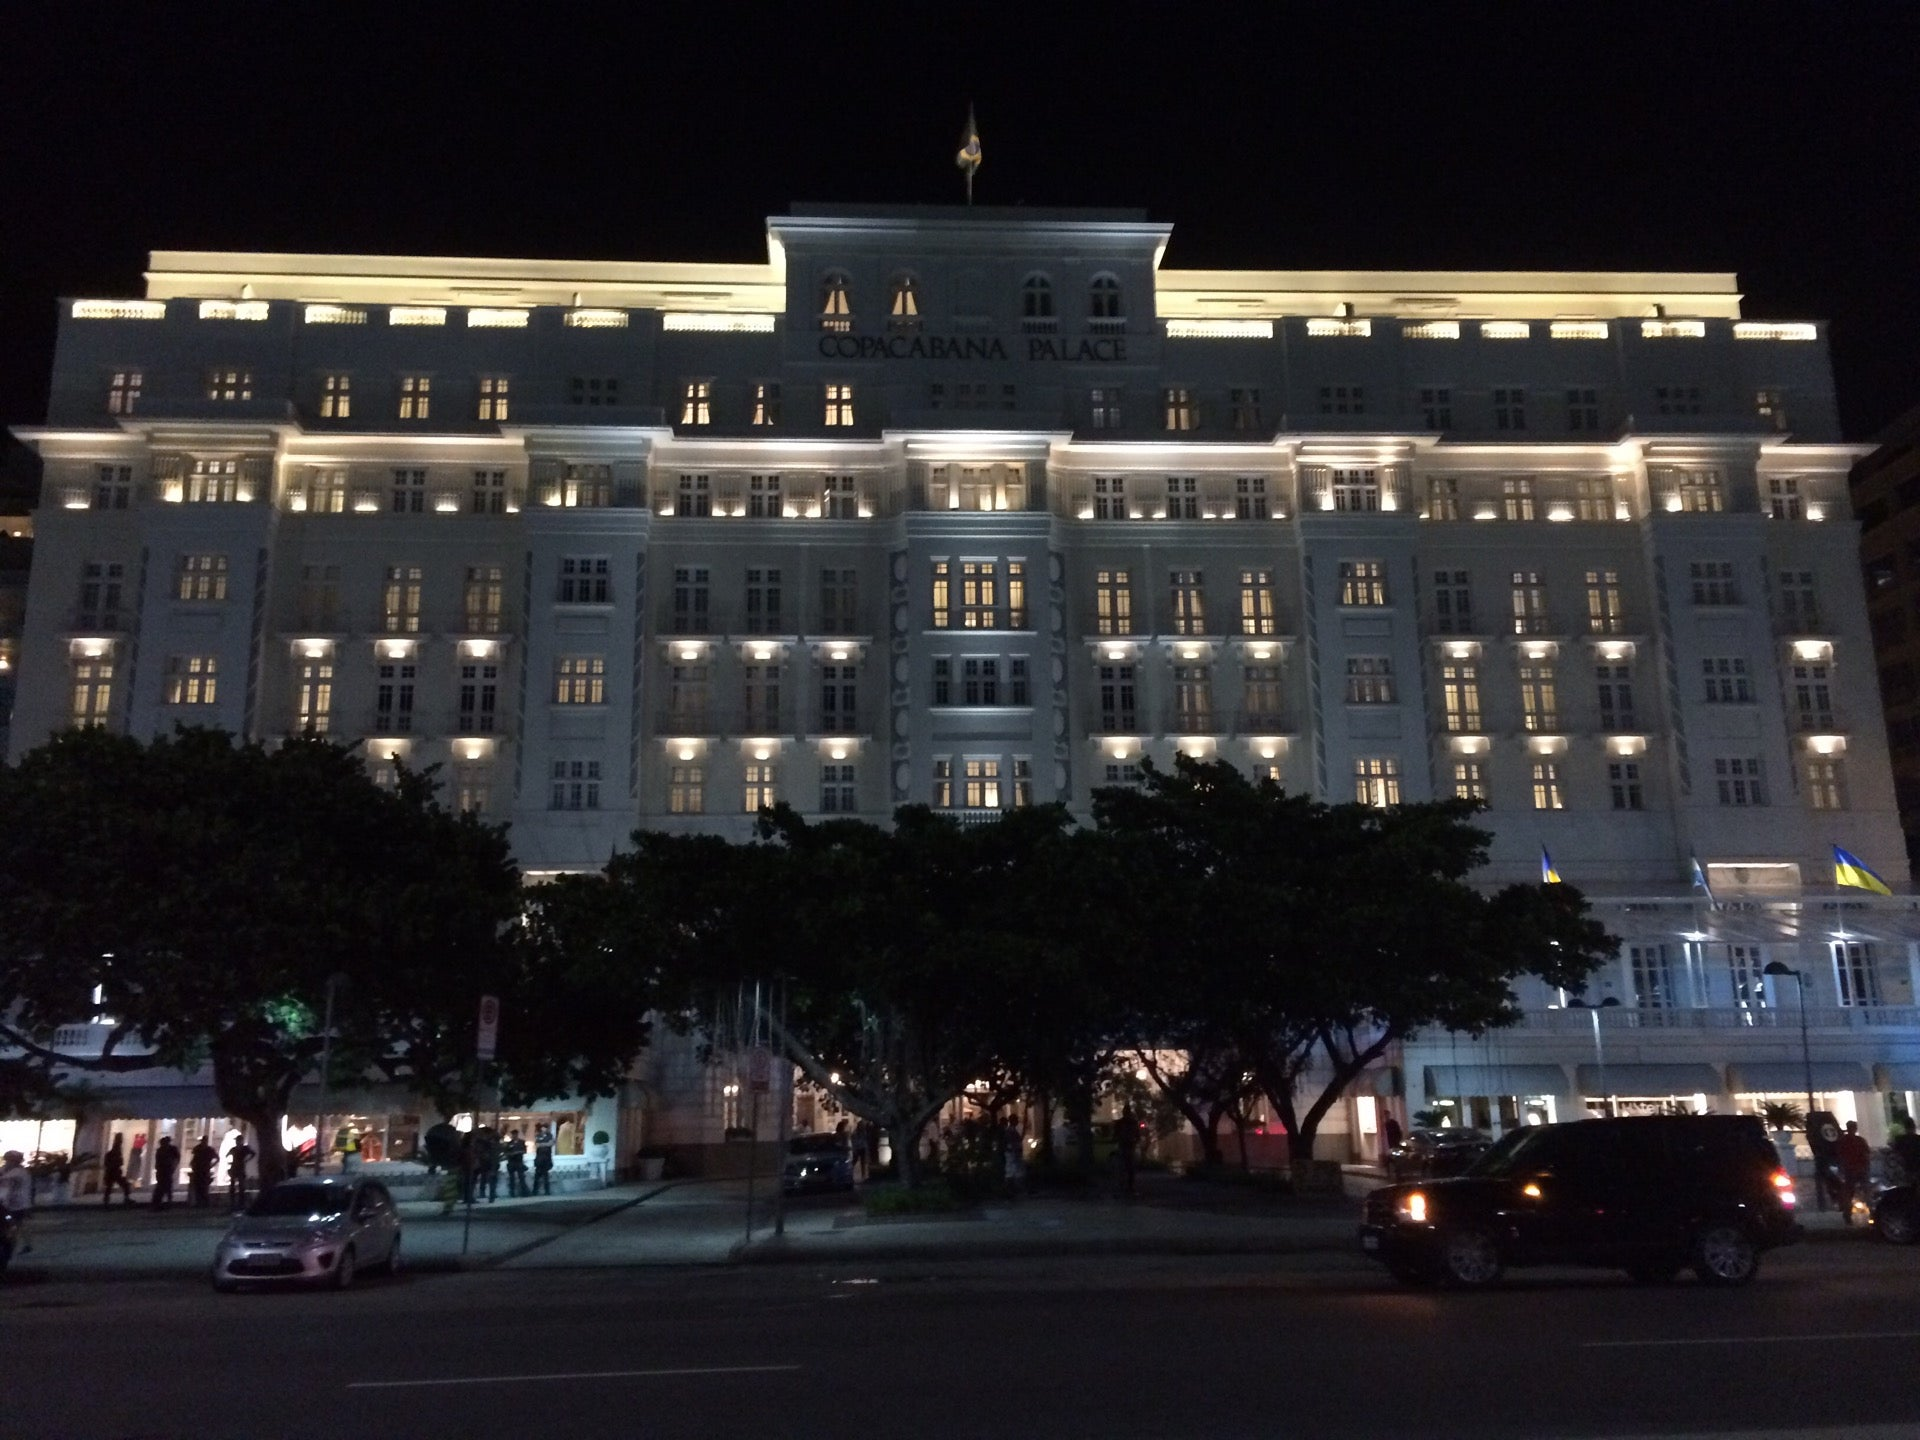 Copacabana Palace Spa